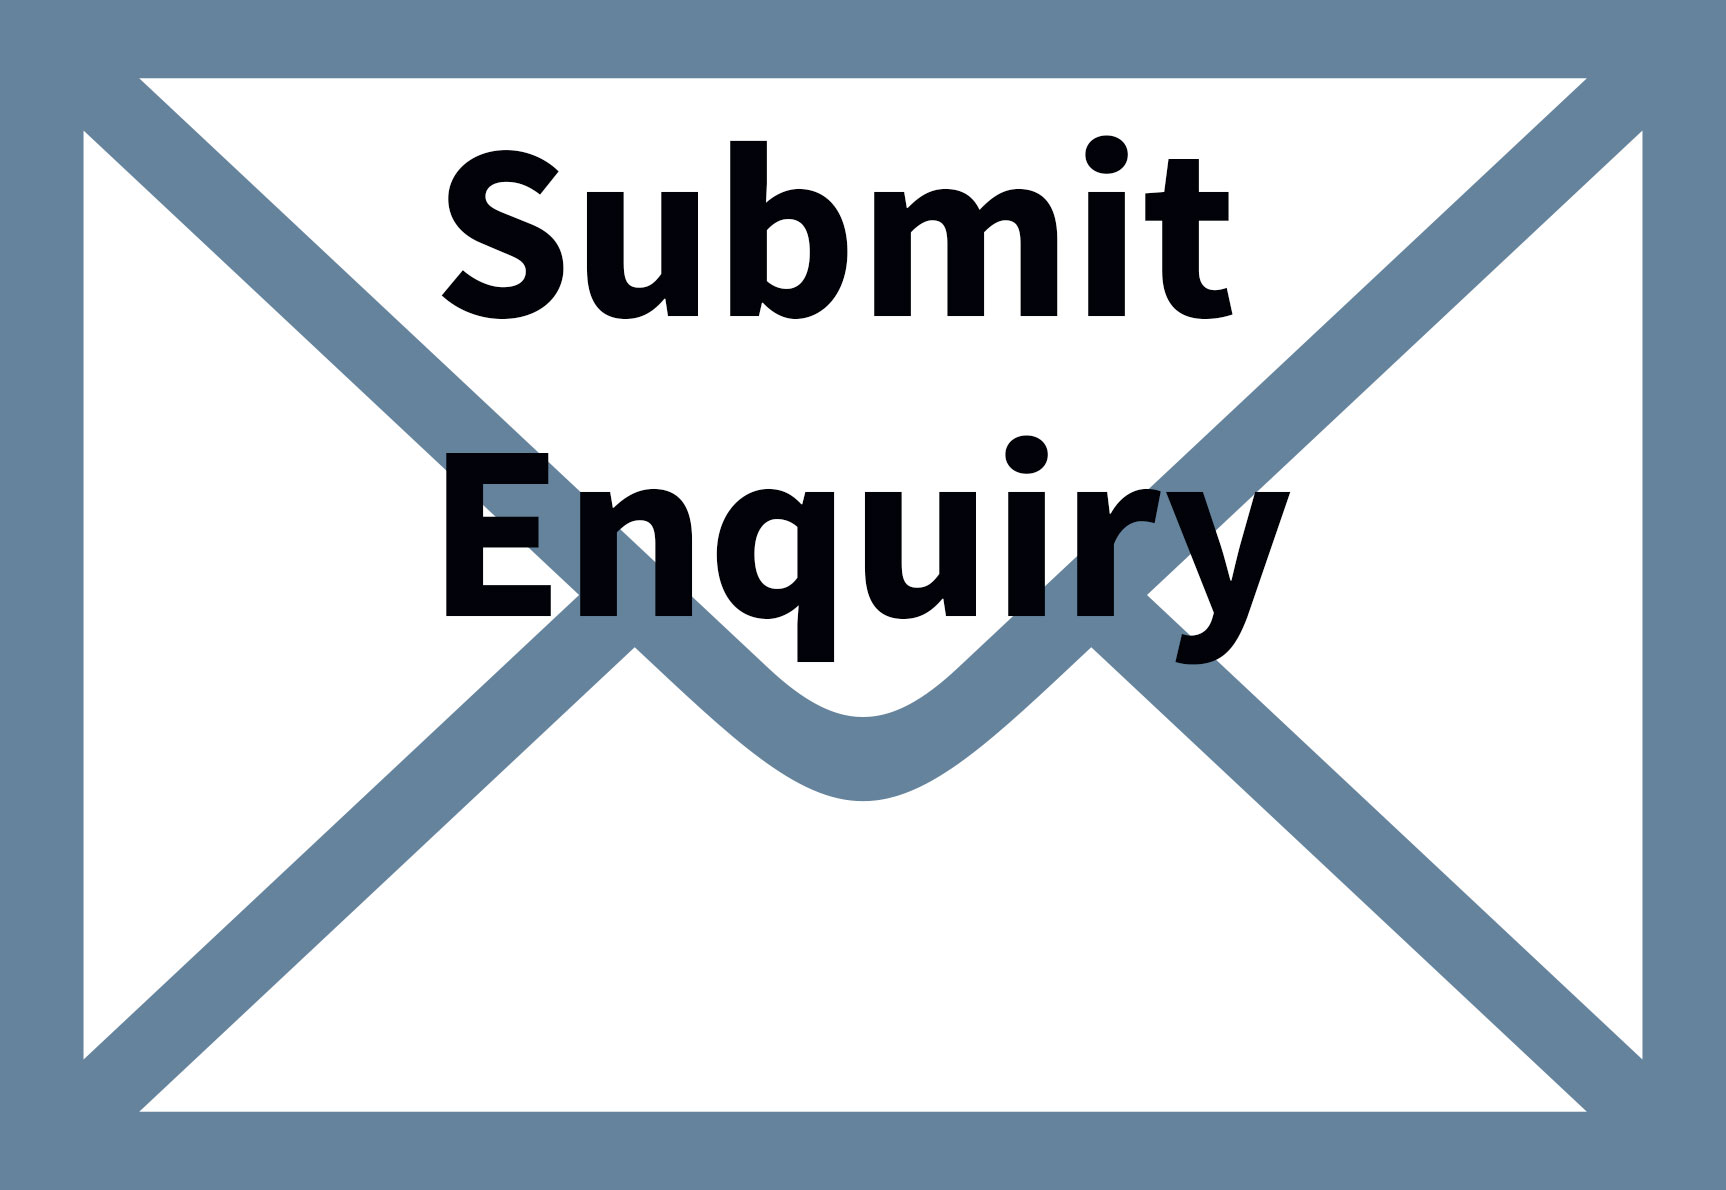 letter button to submit enquiry